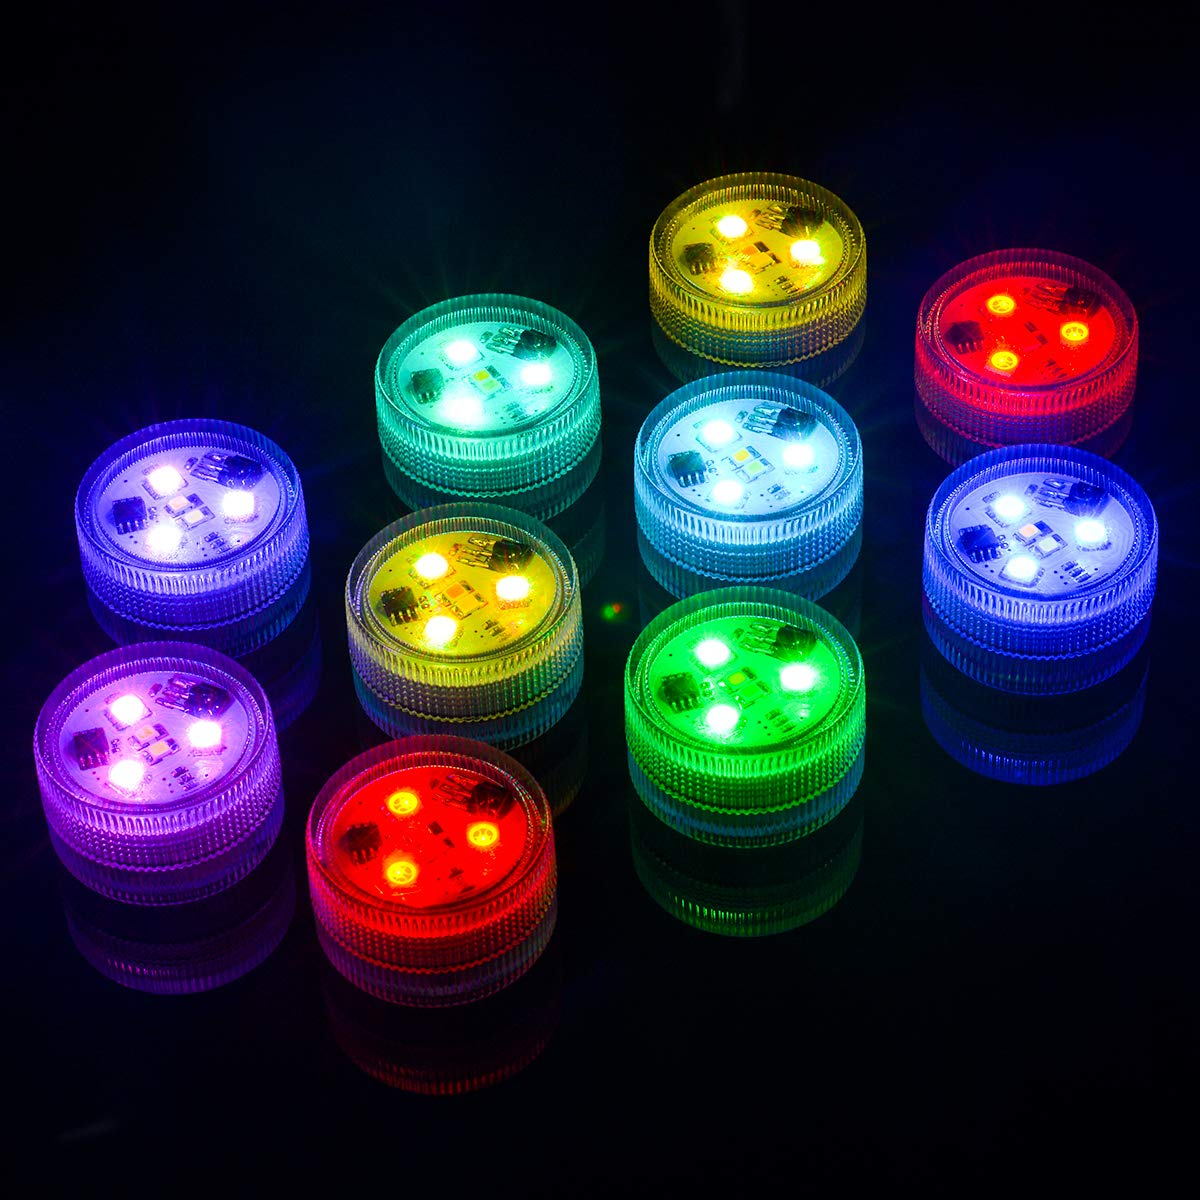 10x Underwater LED Tea Lights, Submersible RGB Multicolor Waterproof 1.5'' Flameless Candles Battery Powered with Remote Control for Vase Bowl Lantern Pond Pool